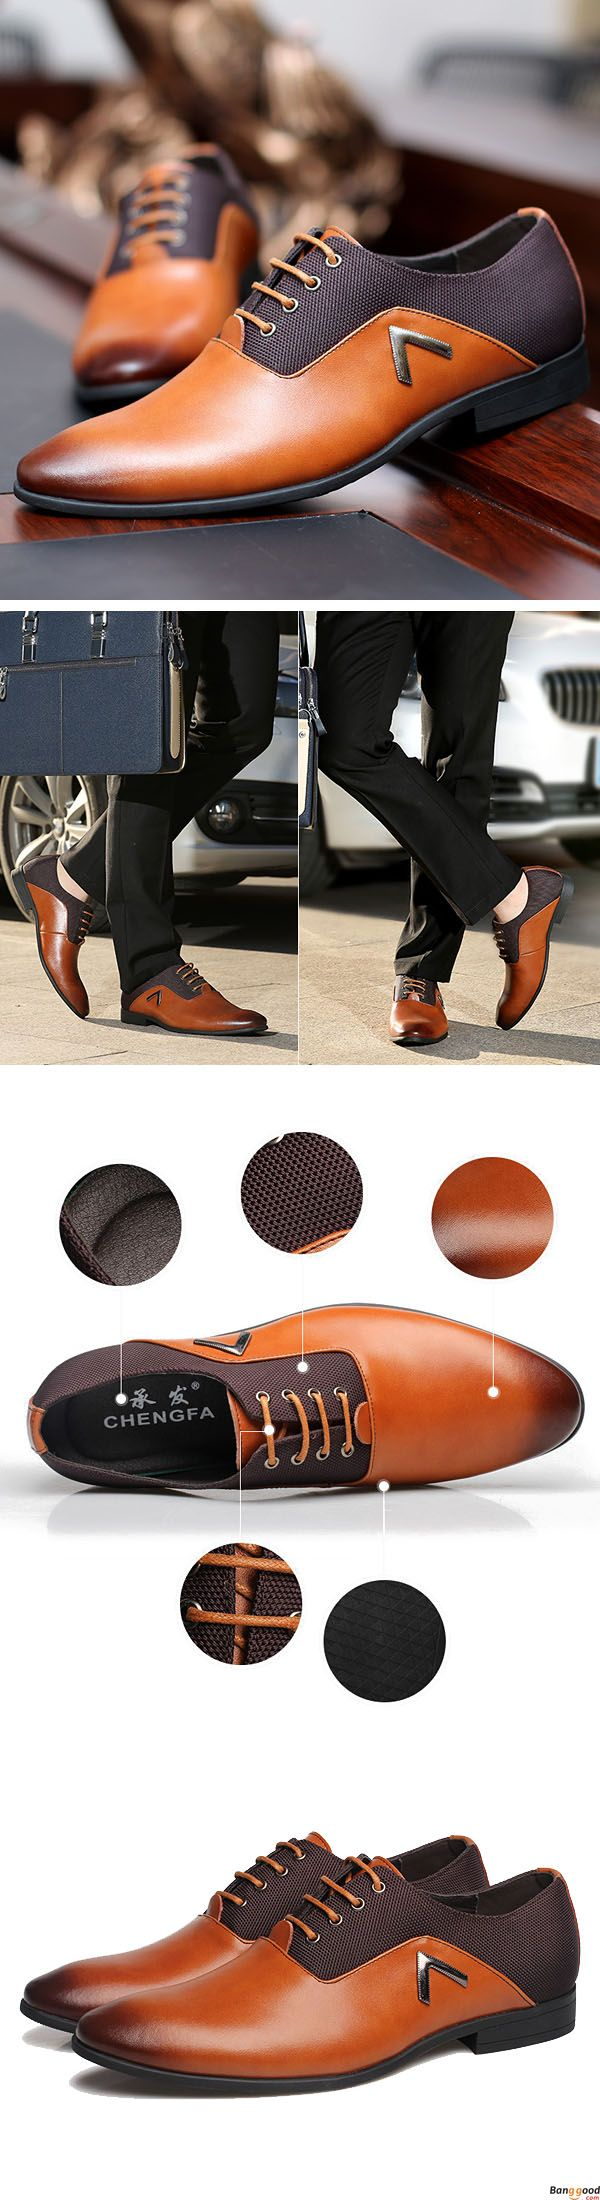 US$42.79+ Free Shipping. 3 colors available. US Size 6.5-10.5 Men Casual Soft Leather Shoes. Men formal shoes, short boots, casual comfortable shoes, oxford shoes, boots, Fashion and chic, casual shoes, men's flats, men's style, chic style, fashion style.